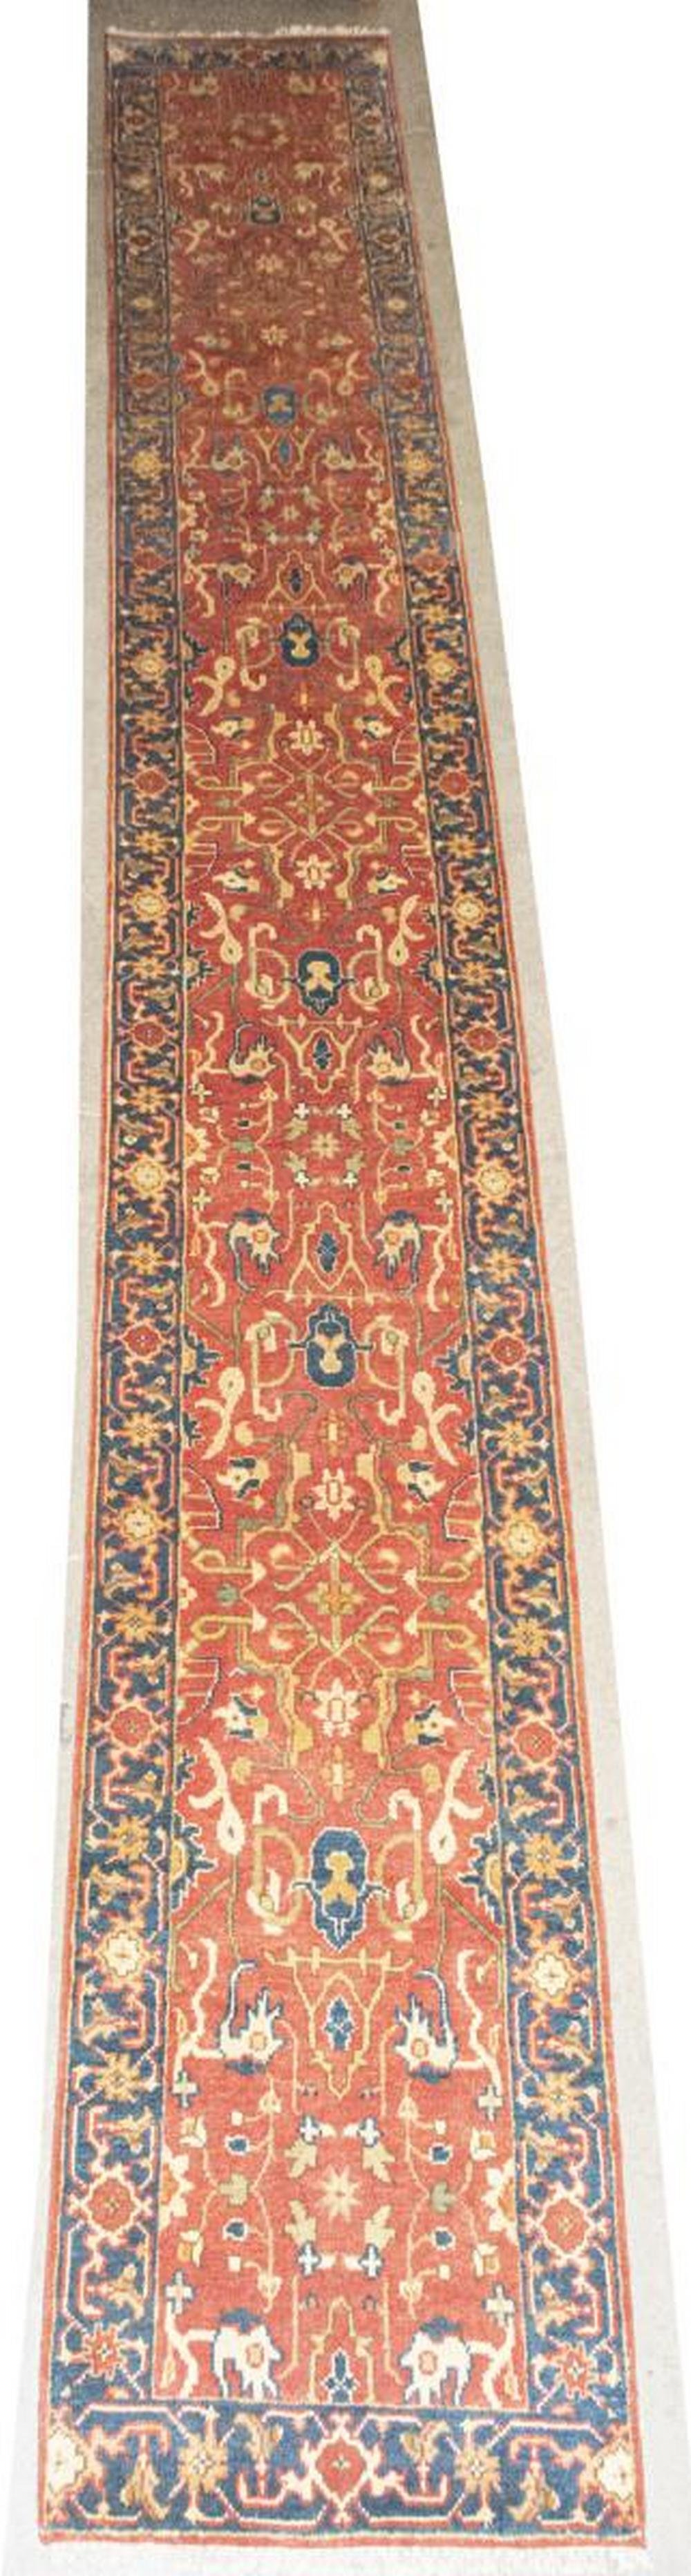 "HAND-TIED PERSIAN MAHAL FLOOR RUNNER, 19'7"" X 2'7"""